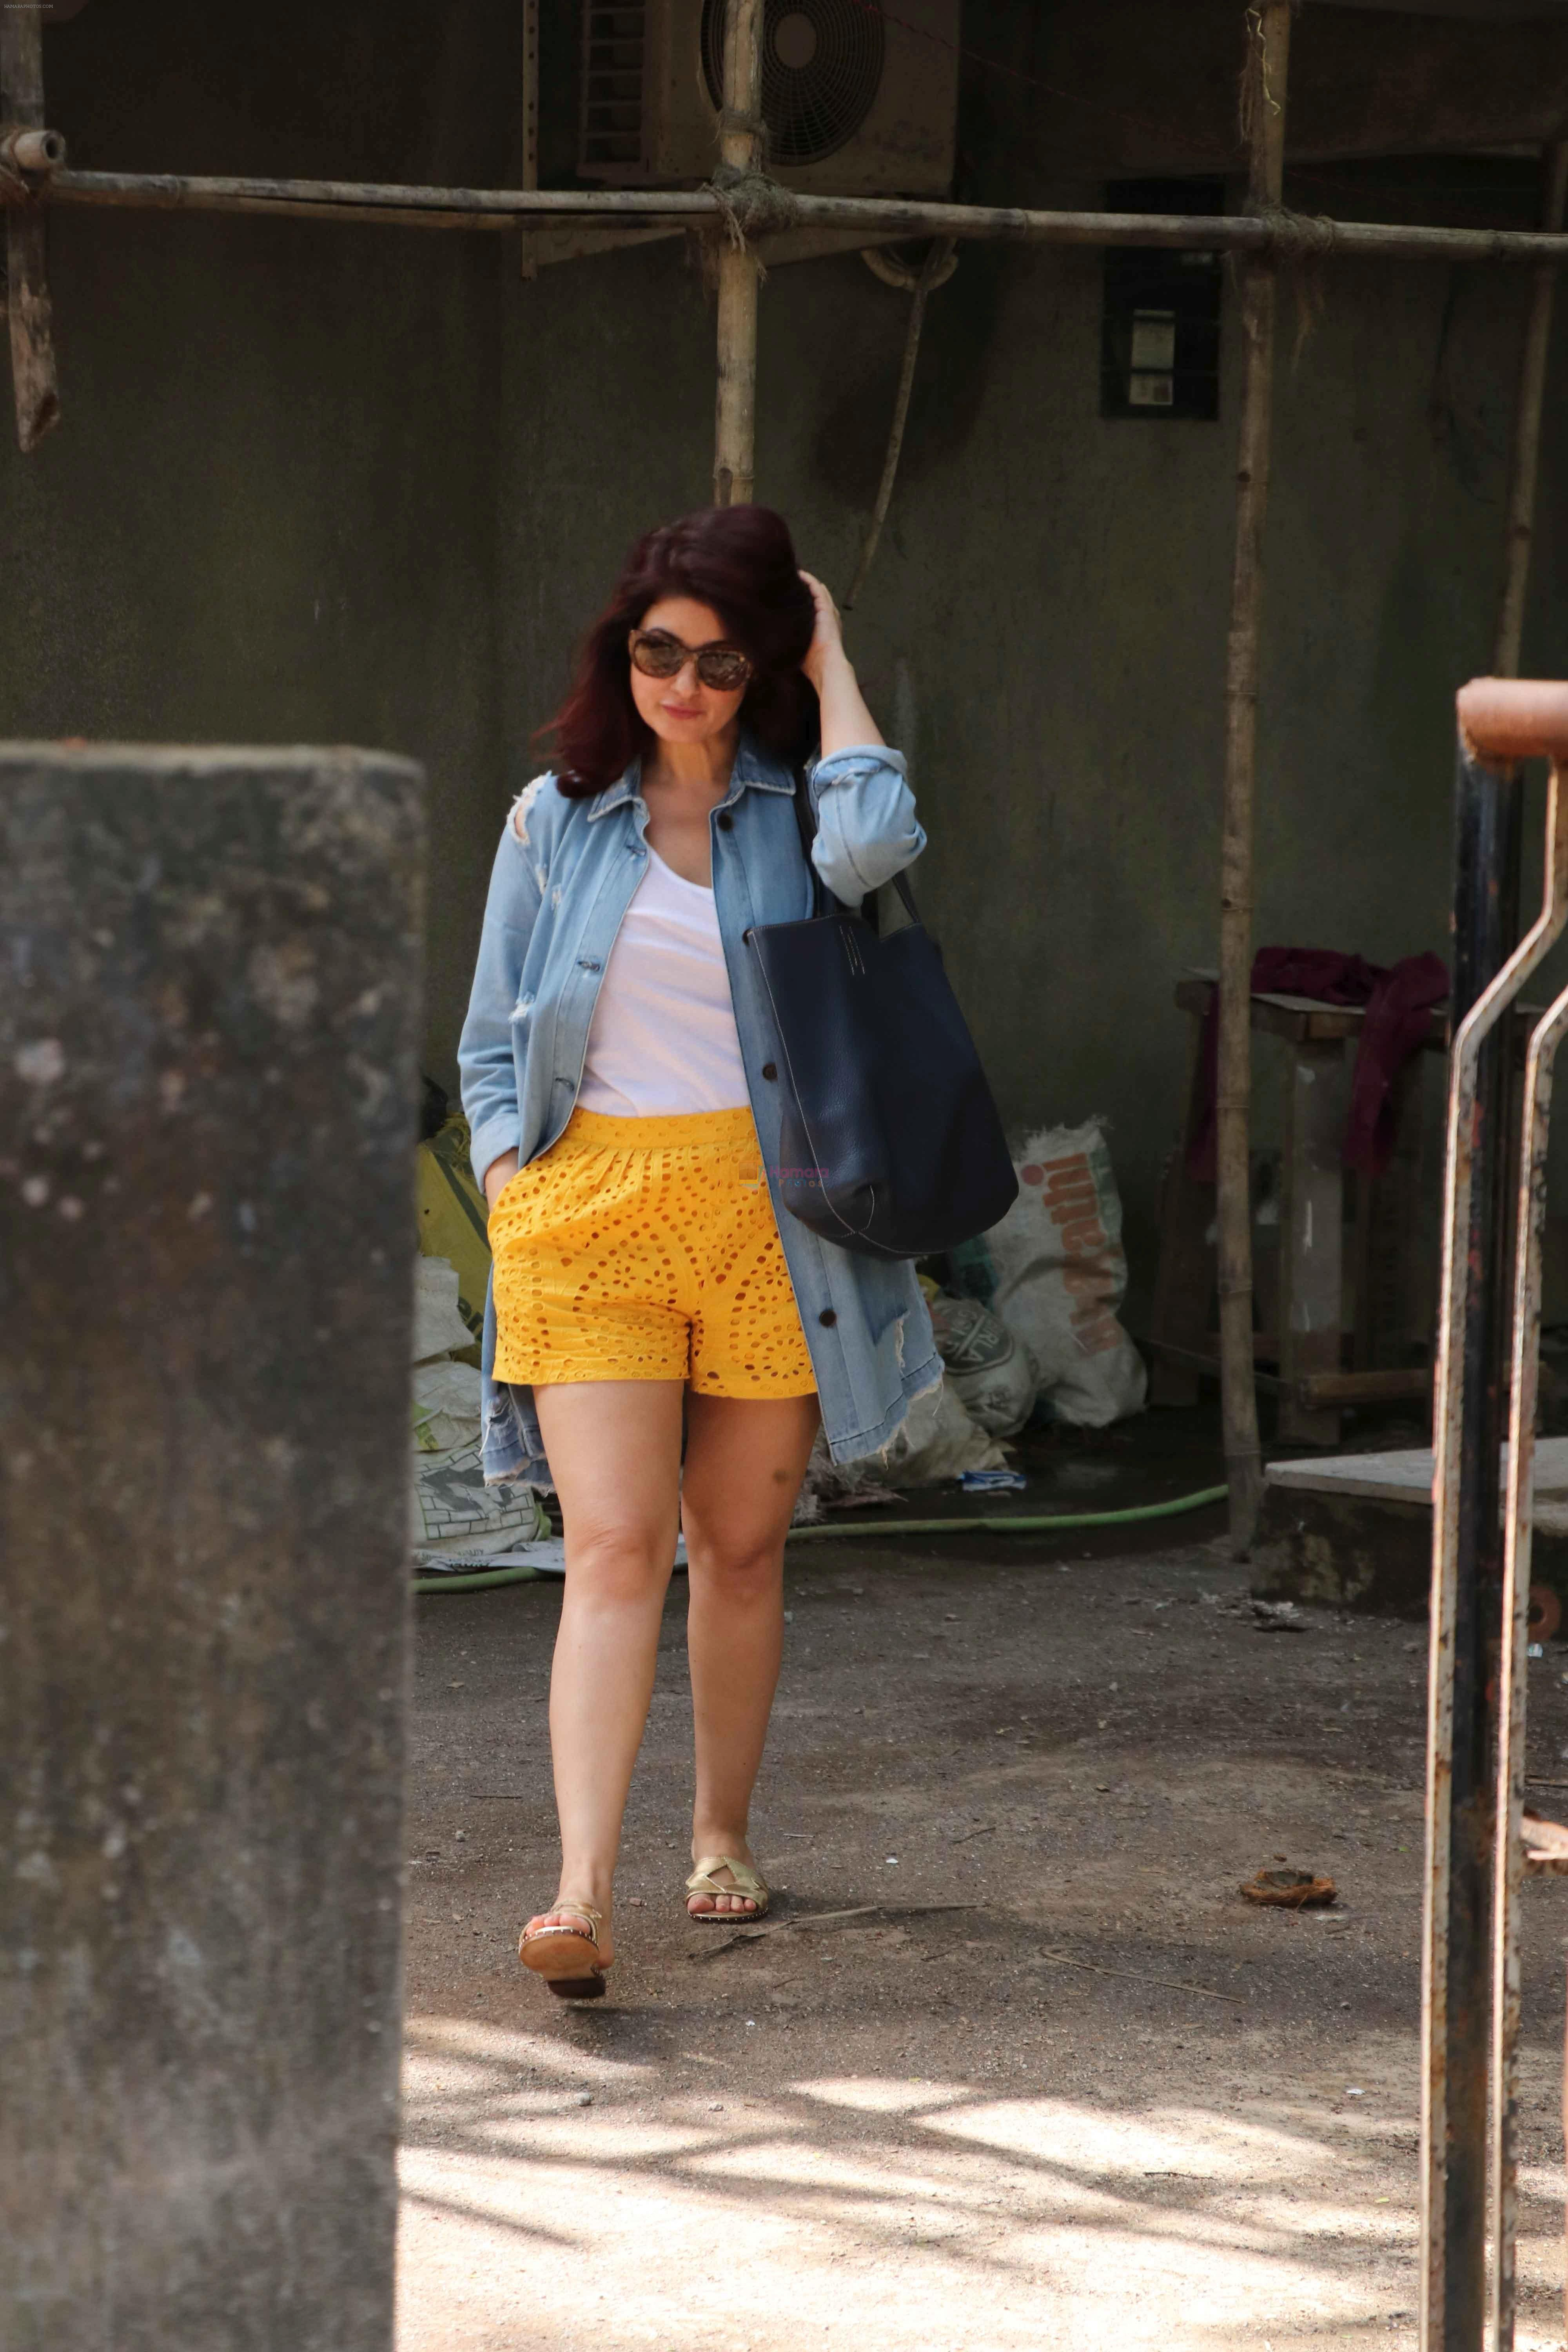 Legs Twinkle Khanna naked (57 pictures) Leaked, Facebook, see through